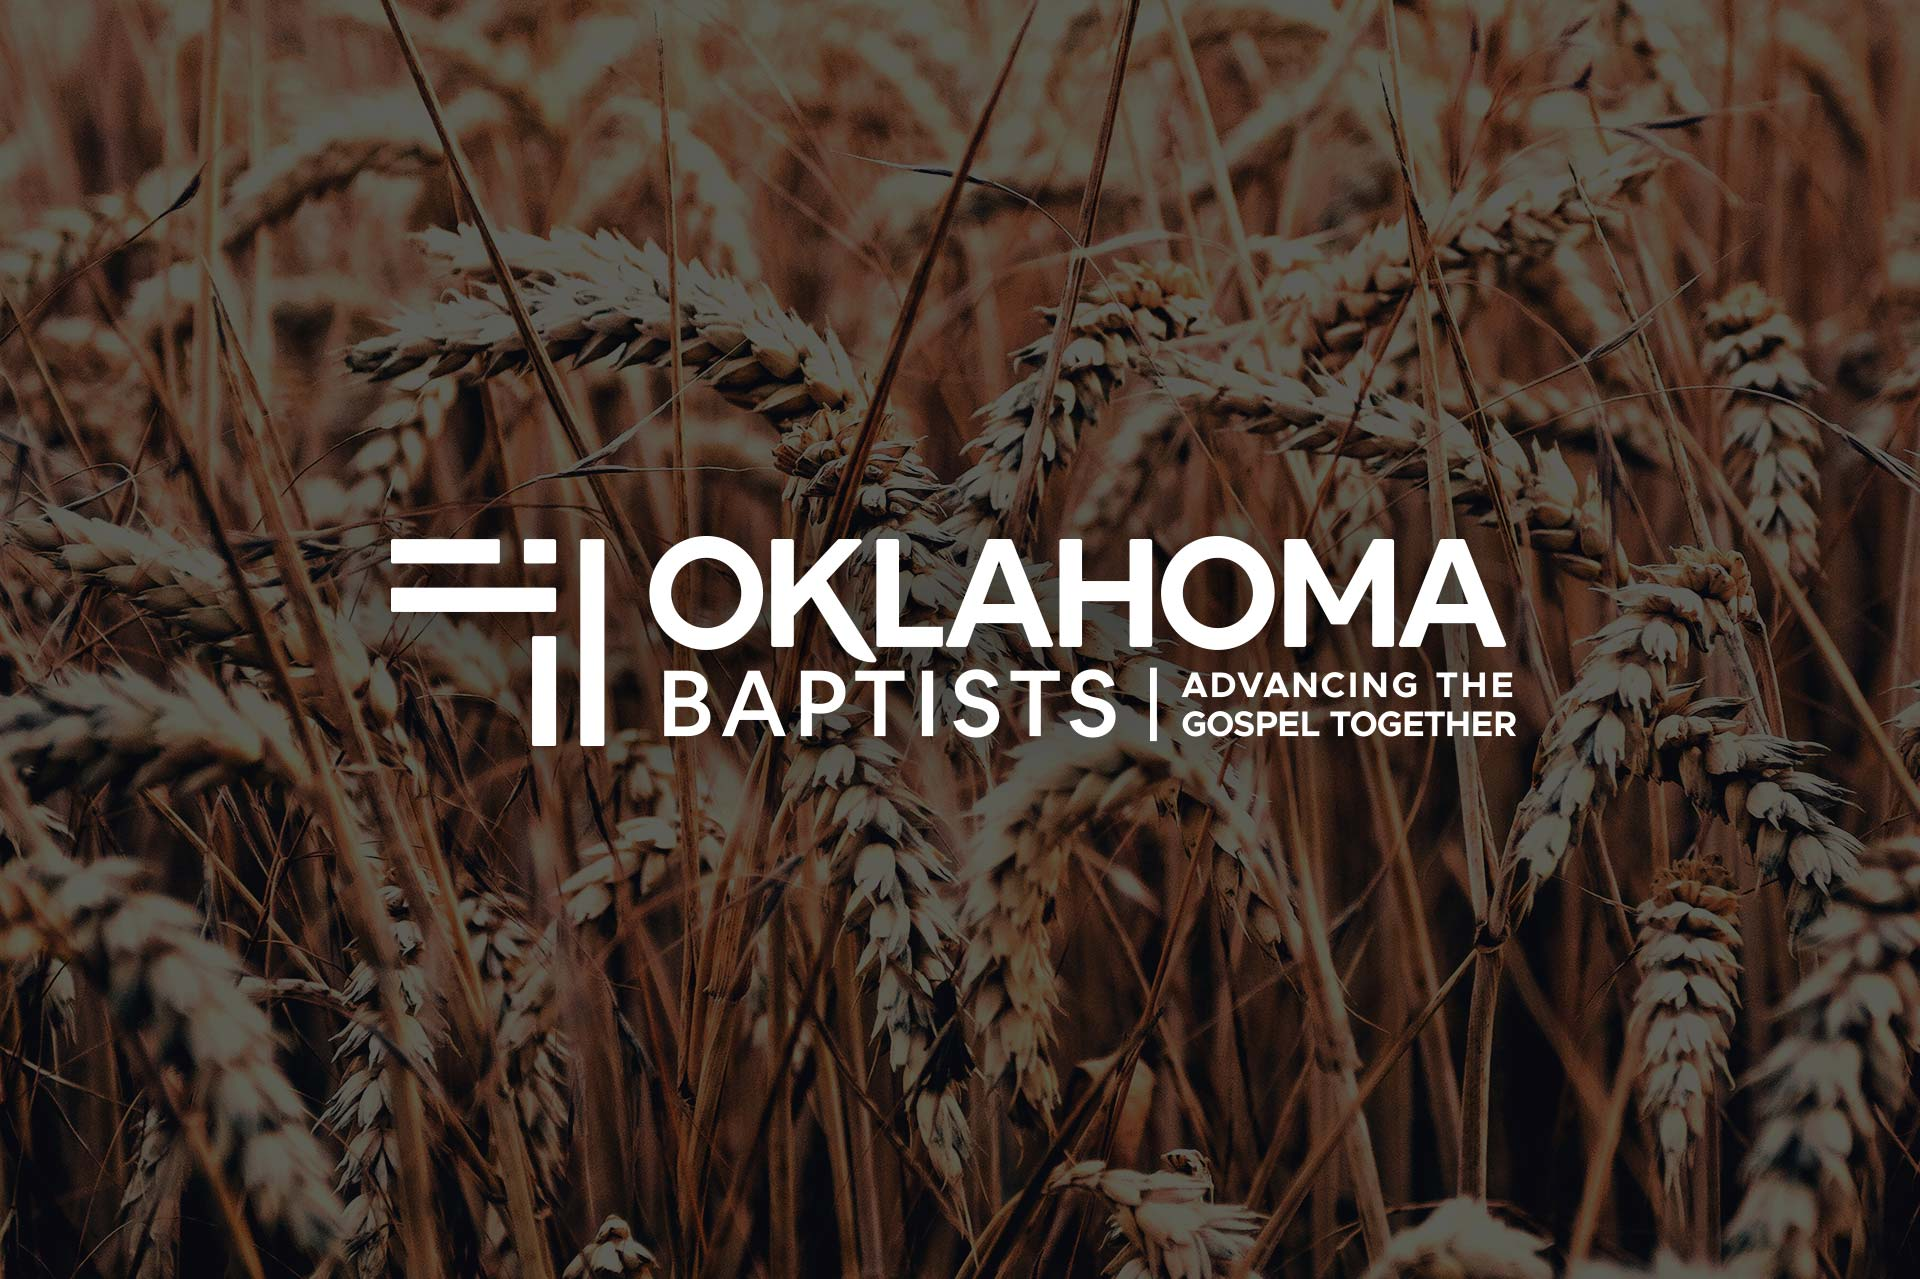 The Oklahoma Baptists logo over an image of wheat in an Oklahoma field.